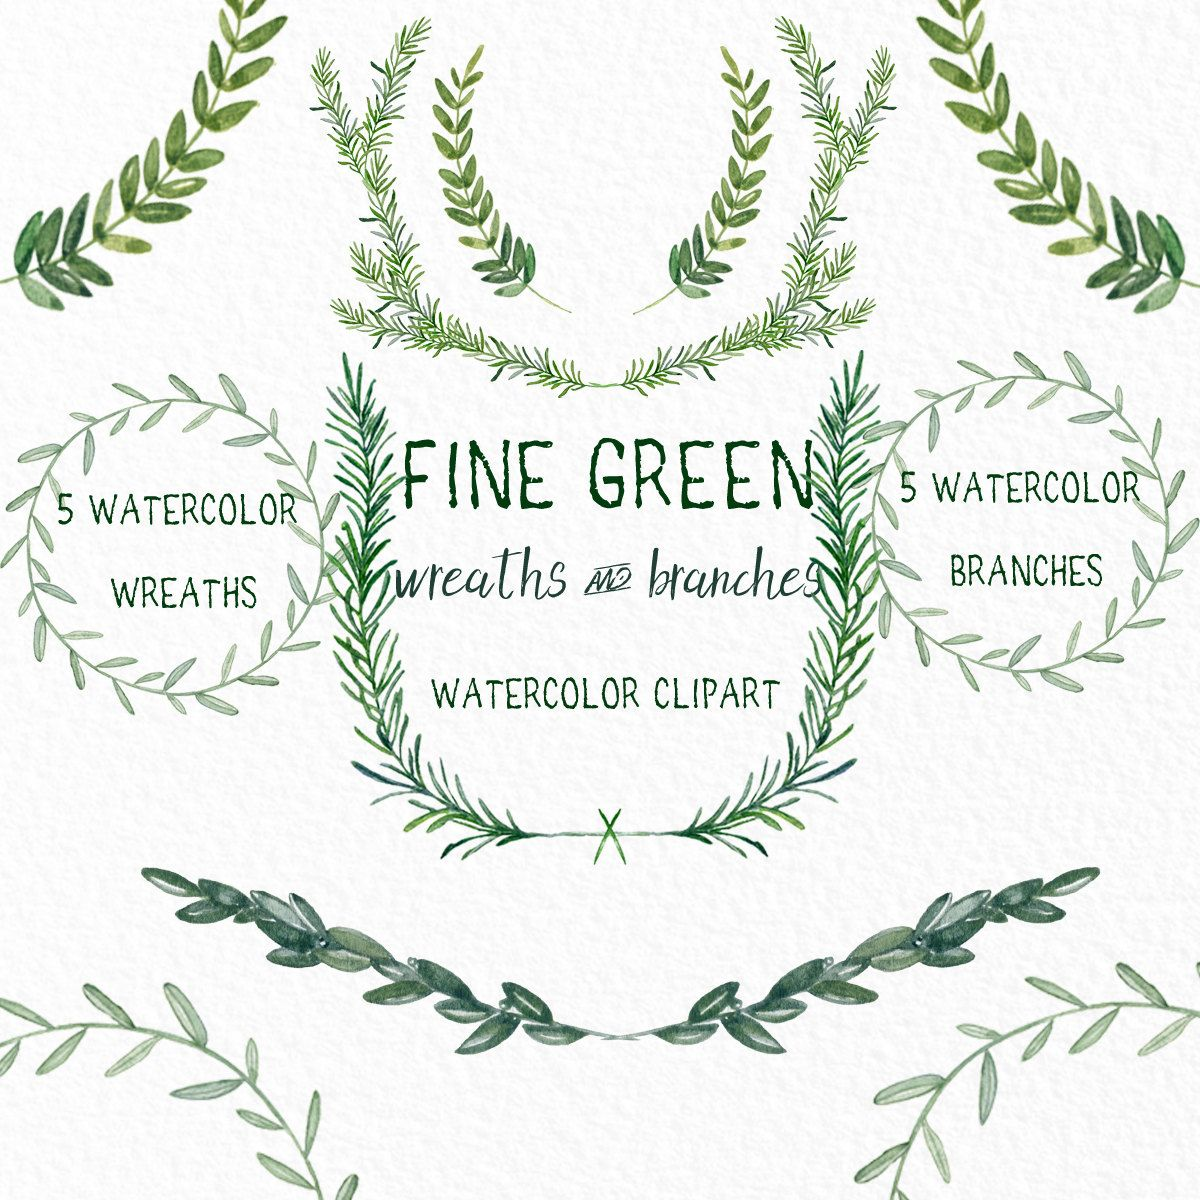 Green Wreaths And Branches Watercolor Clipart Peinte A La Main